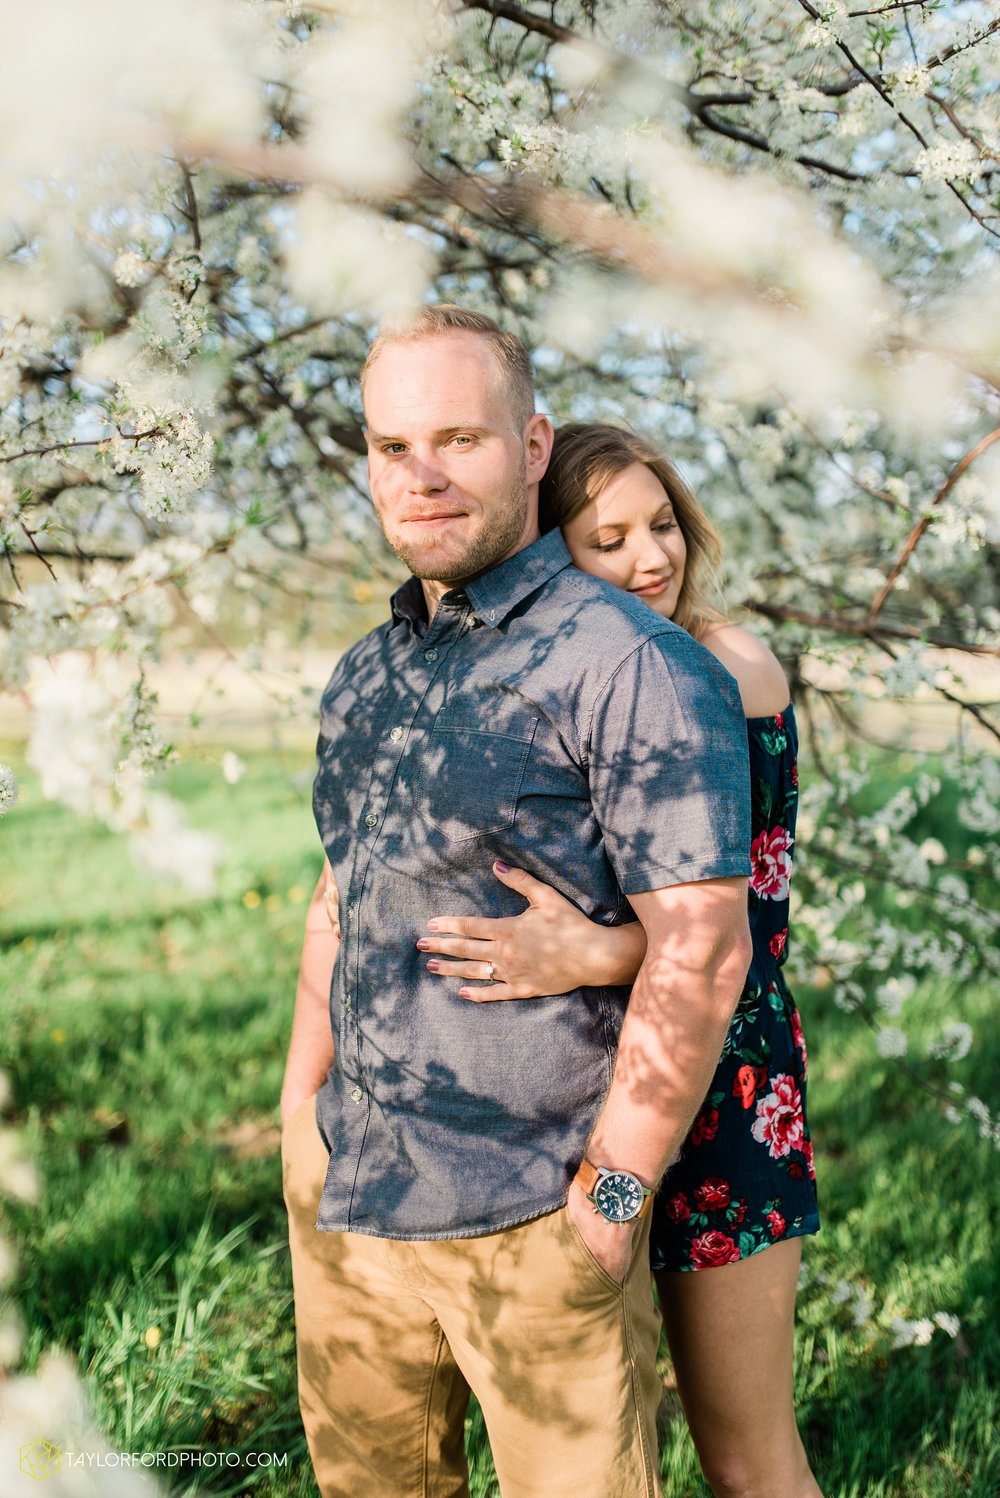 van-wert-ohio-spring-farm-engagement-photographer-photographer-Taylor-Ford-Photography_7104.jpg